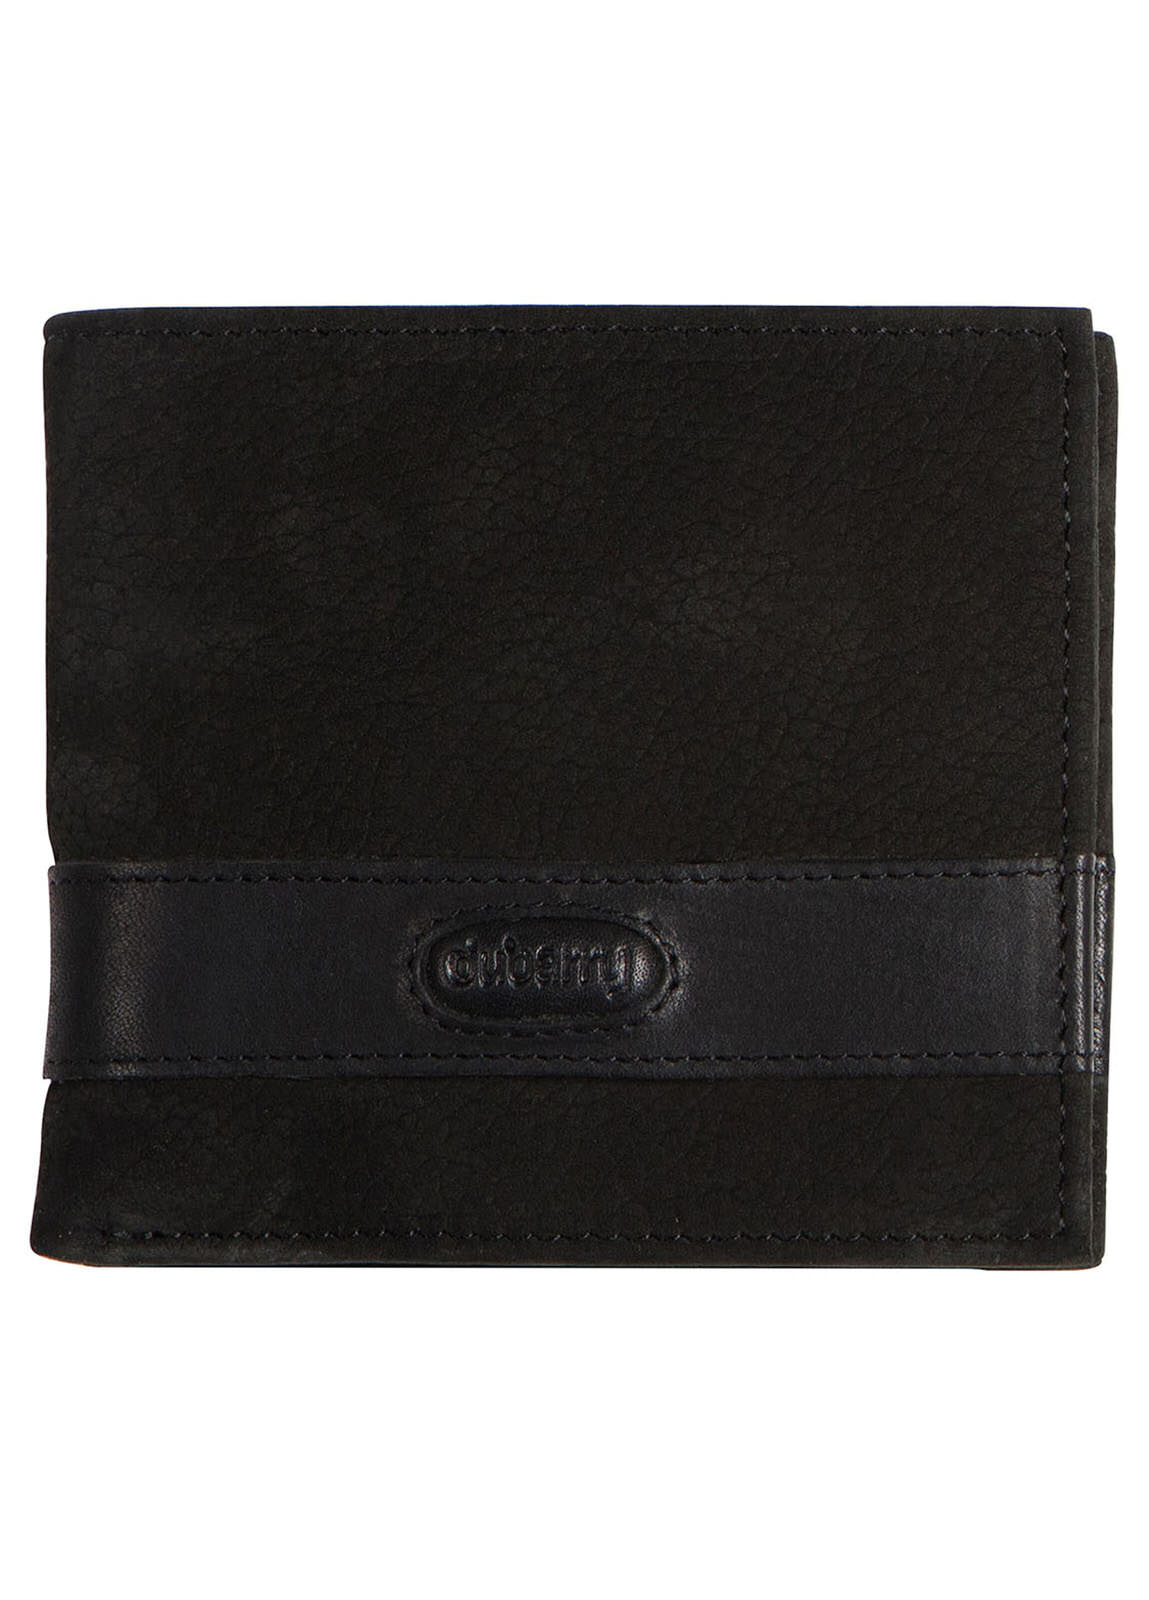 Grafton_Leather_Wallet_Black_Image_2